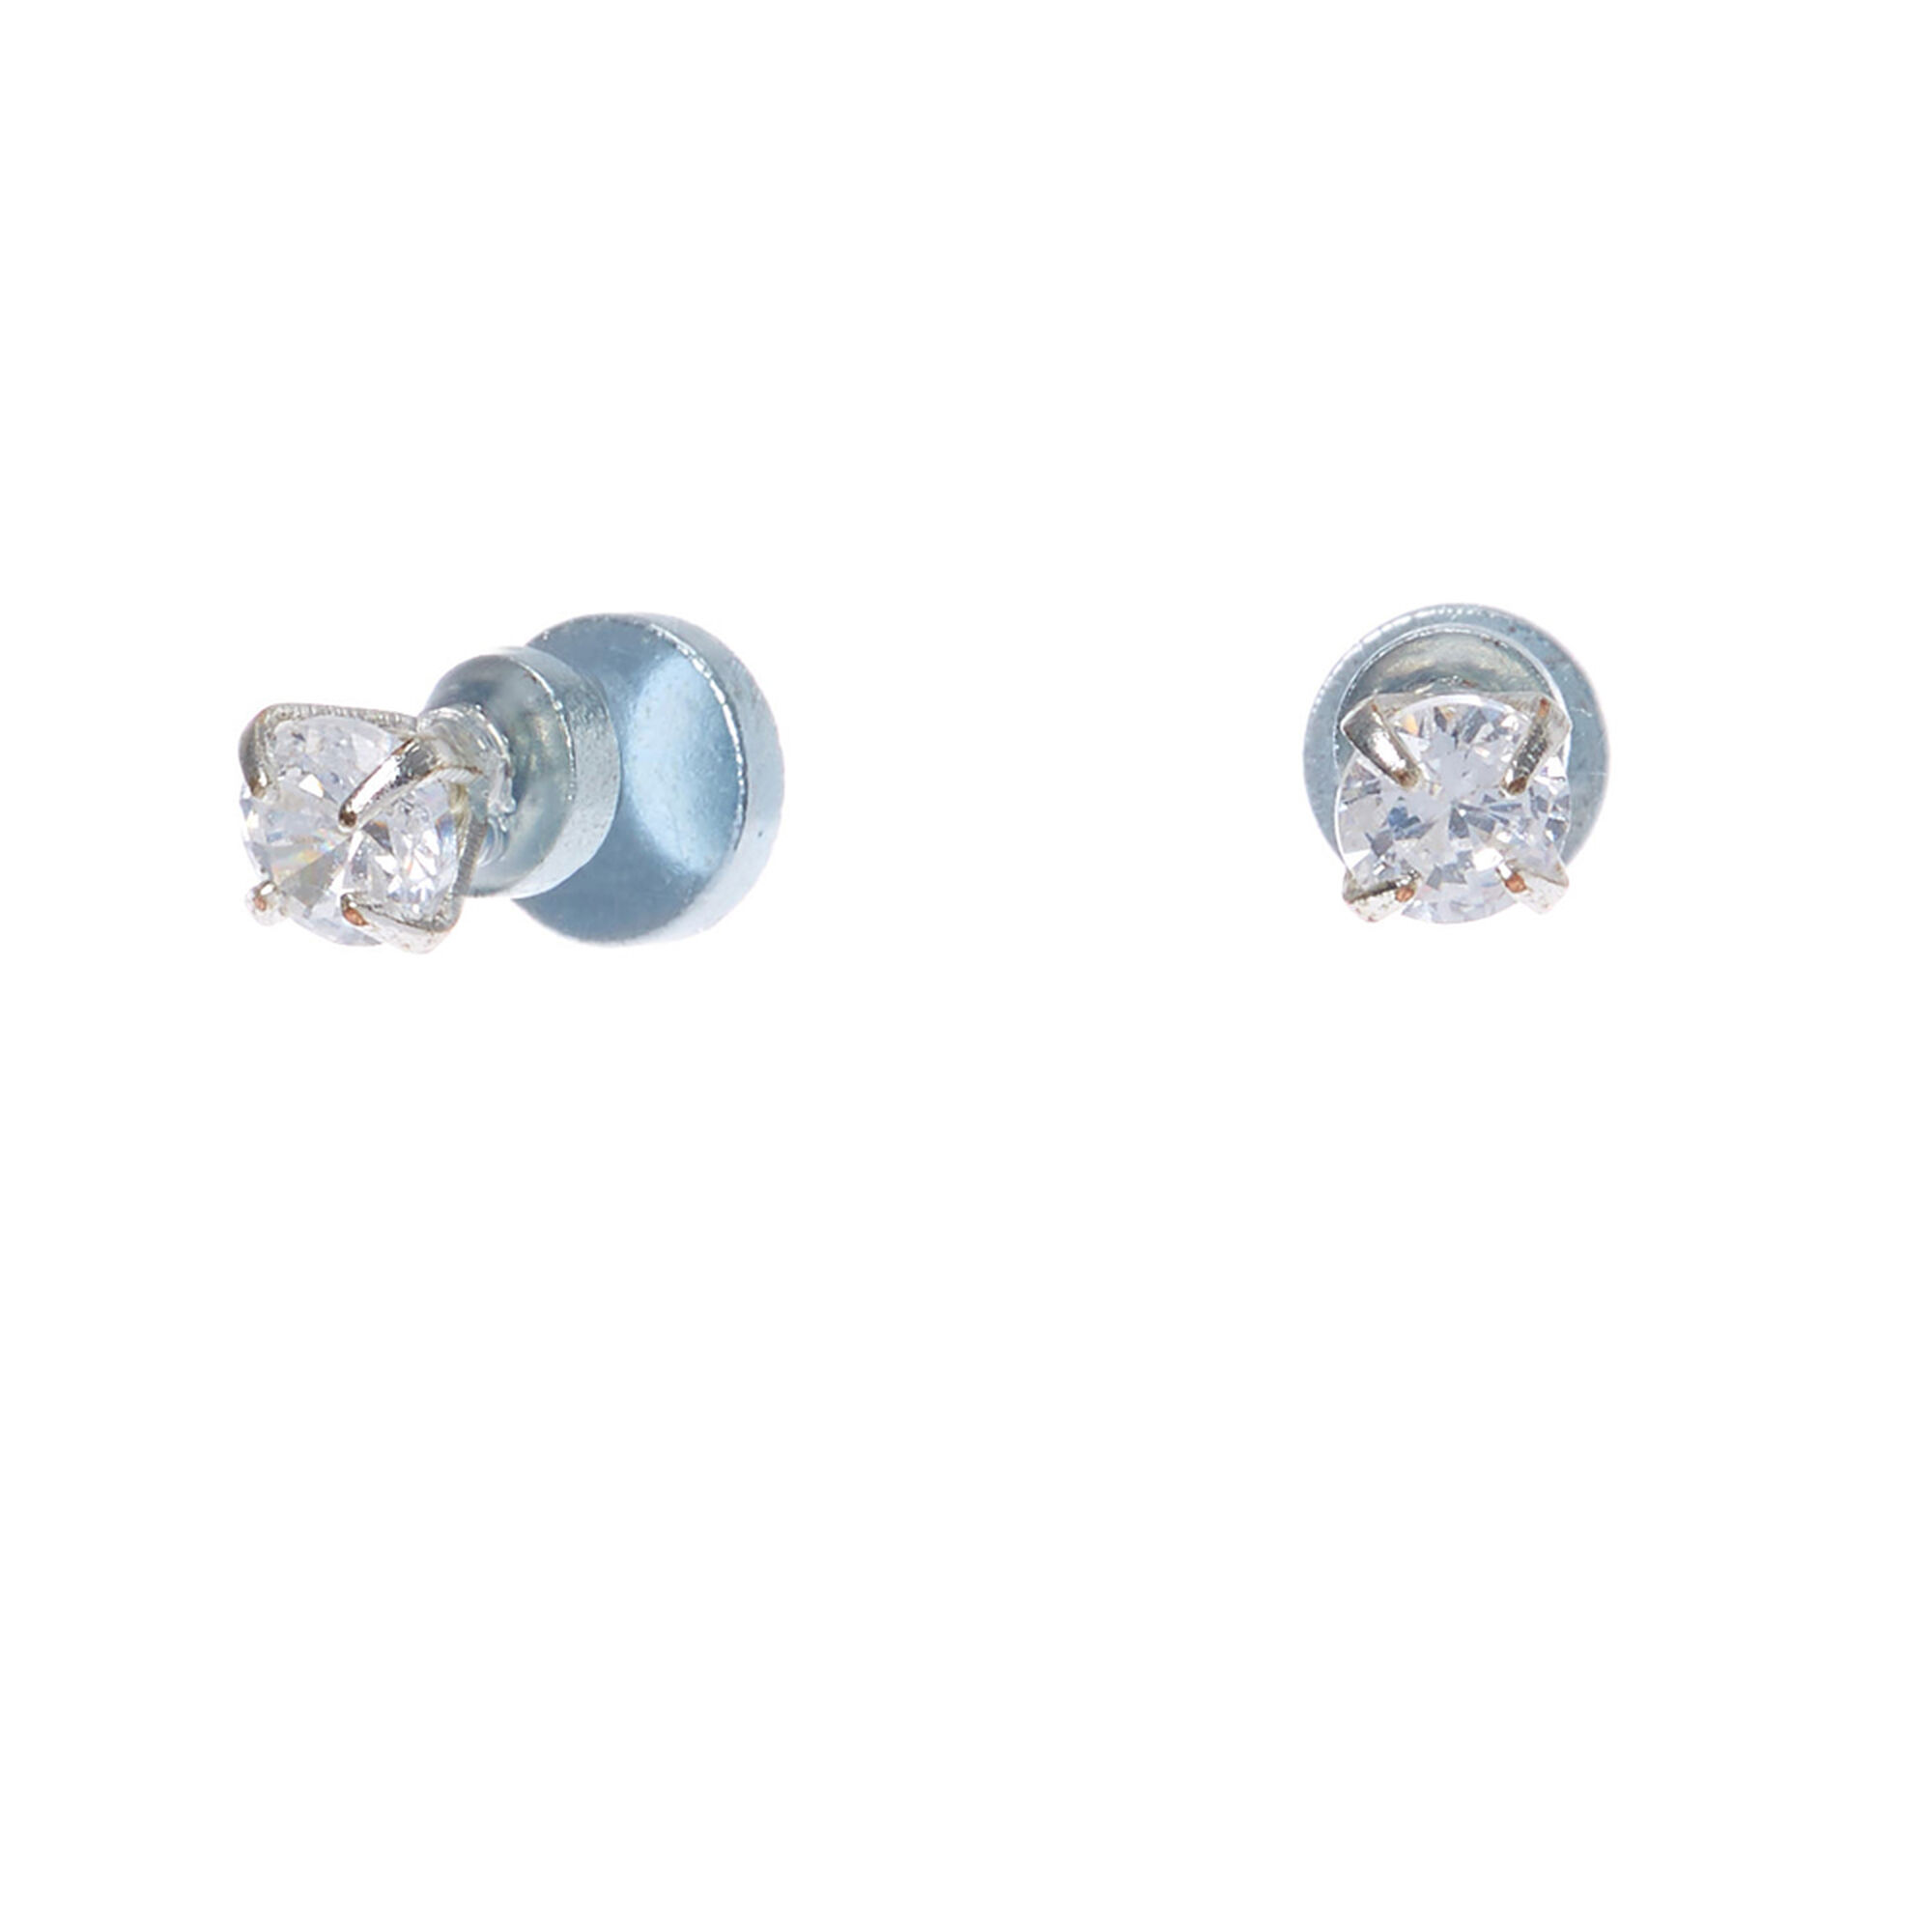 earrings aurora claw classic brilliant stud studearrings diamond jewellery cut brilliantcut